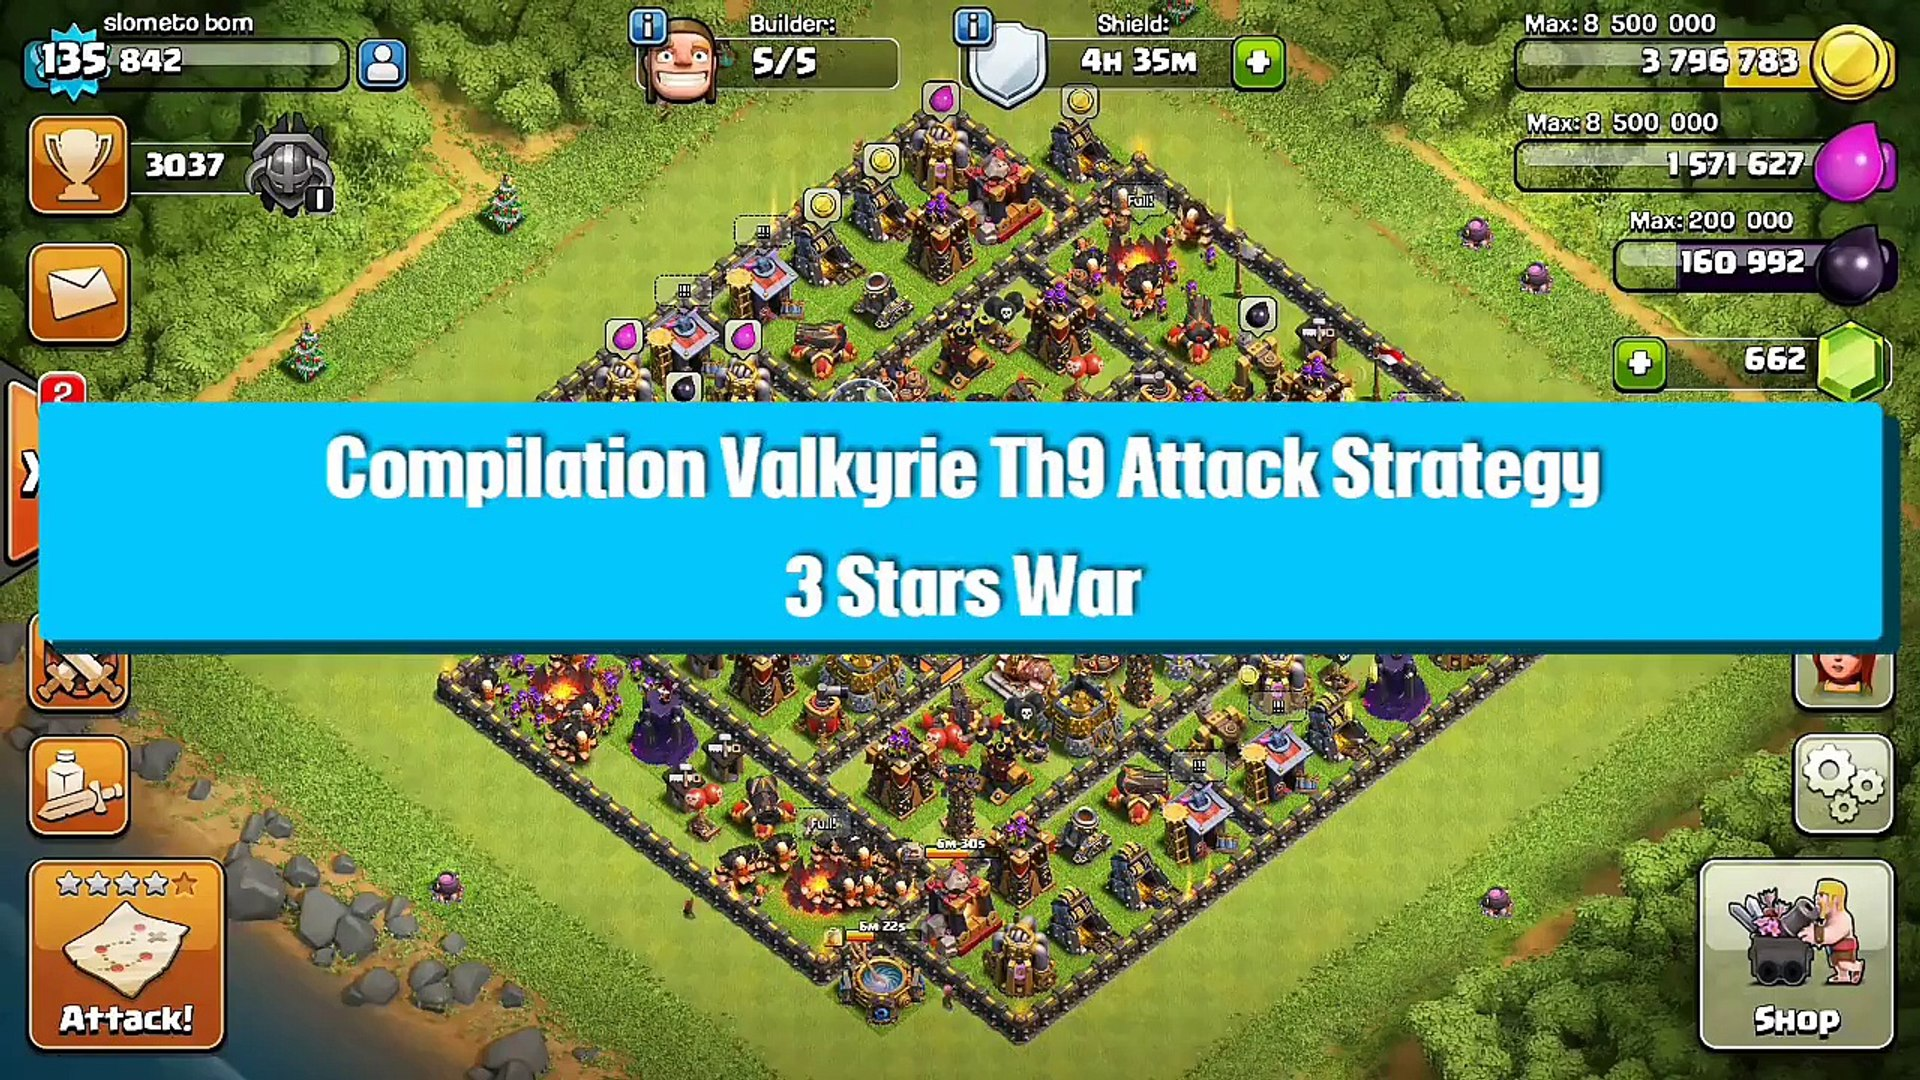 3 Star Th9 vs Th9 Valkyrie War Attack Strategy Compilation